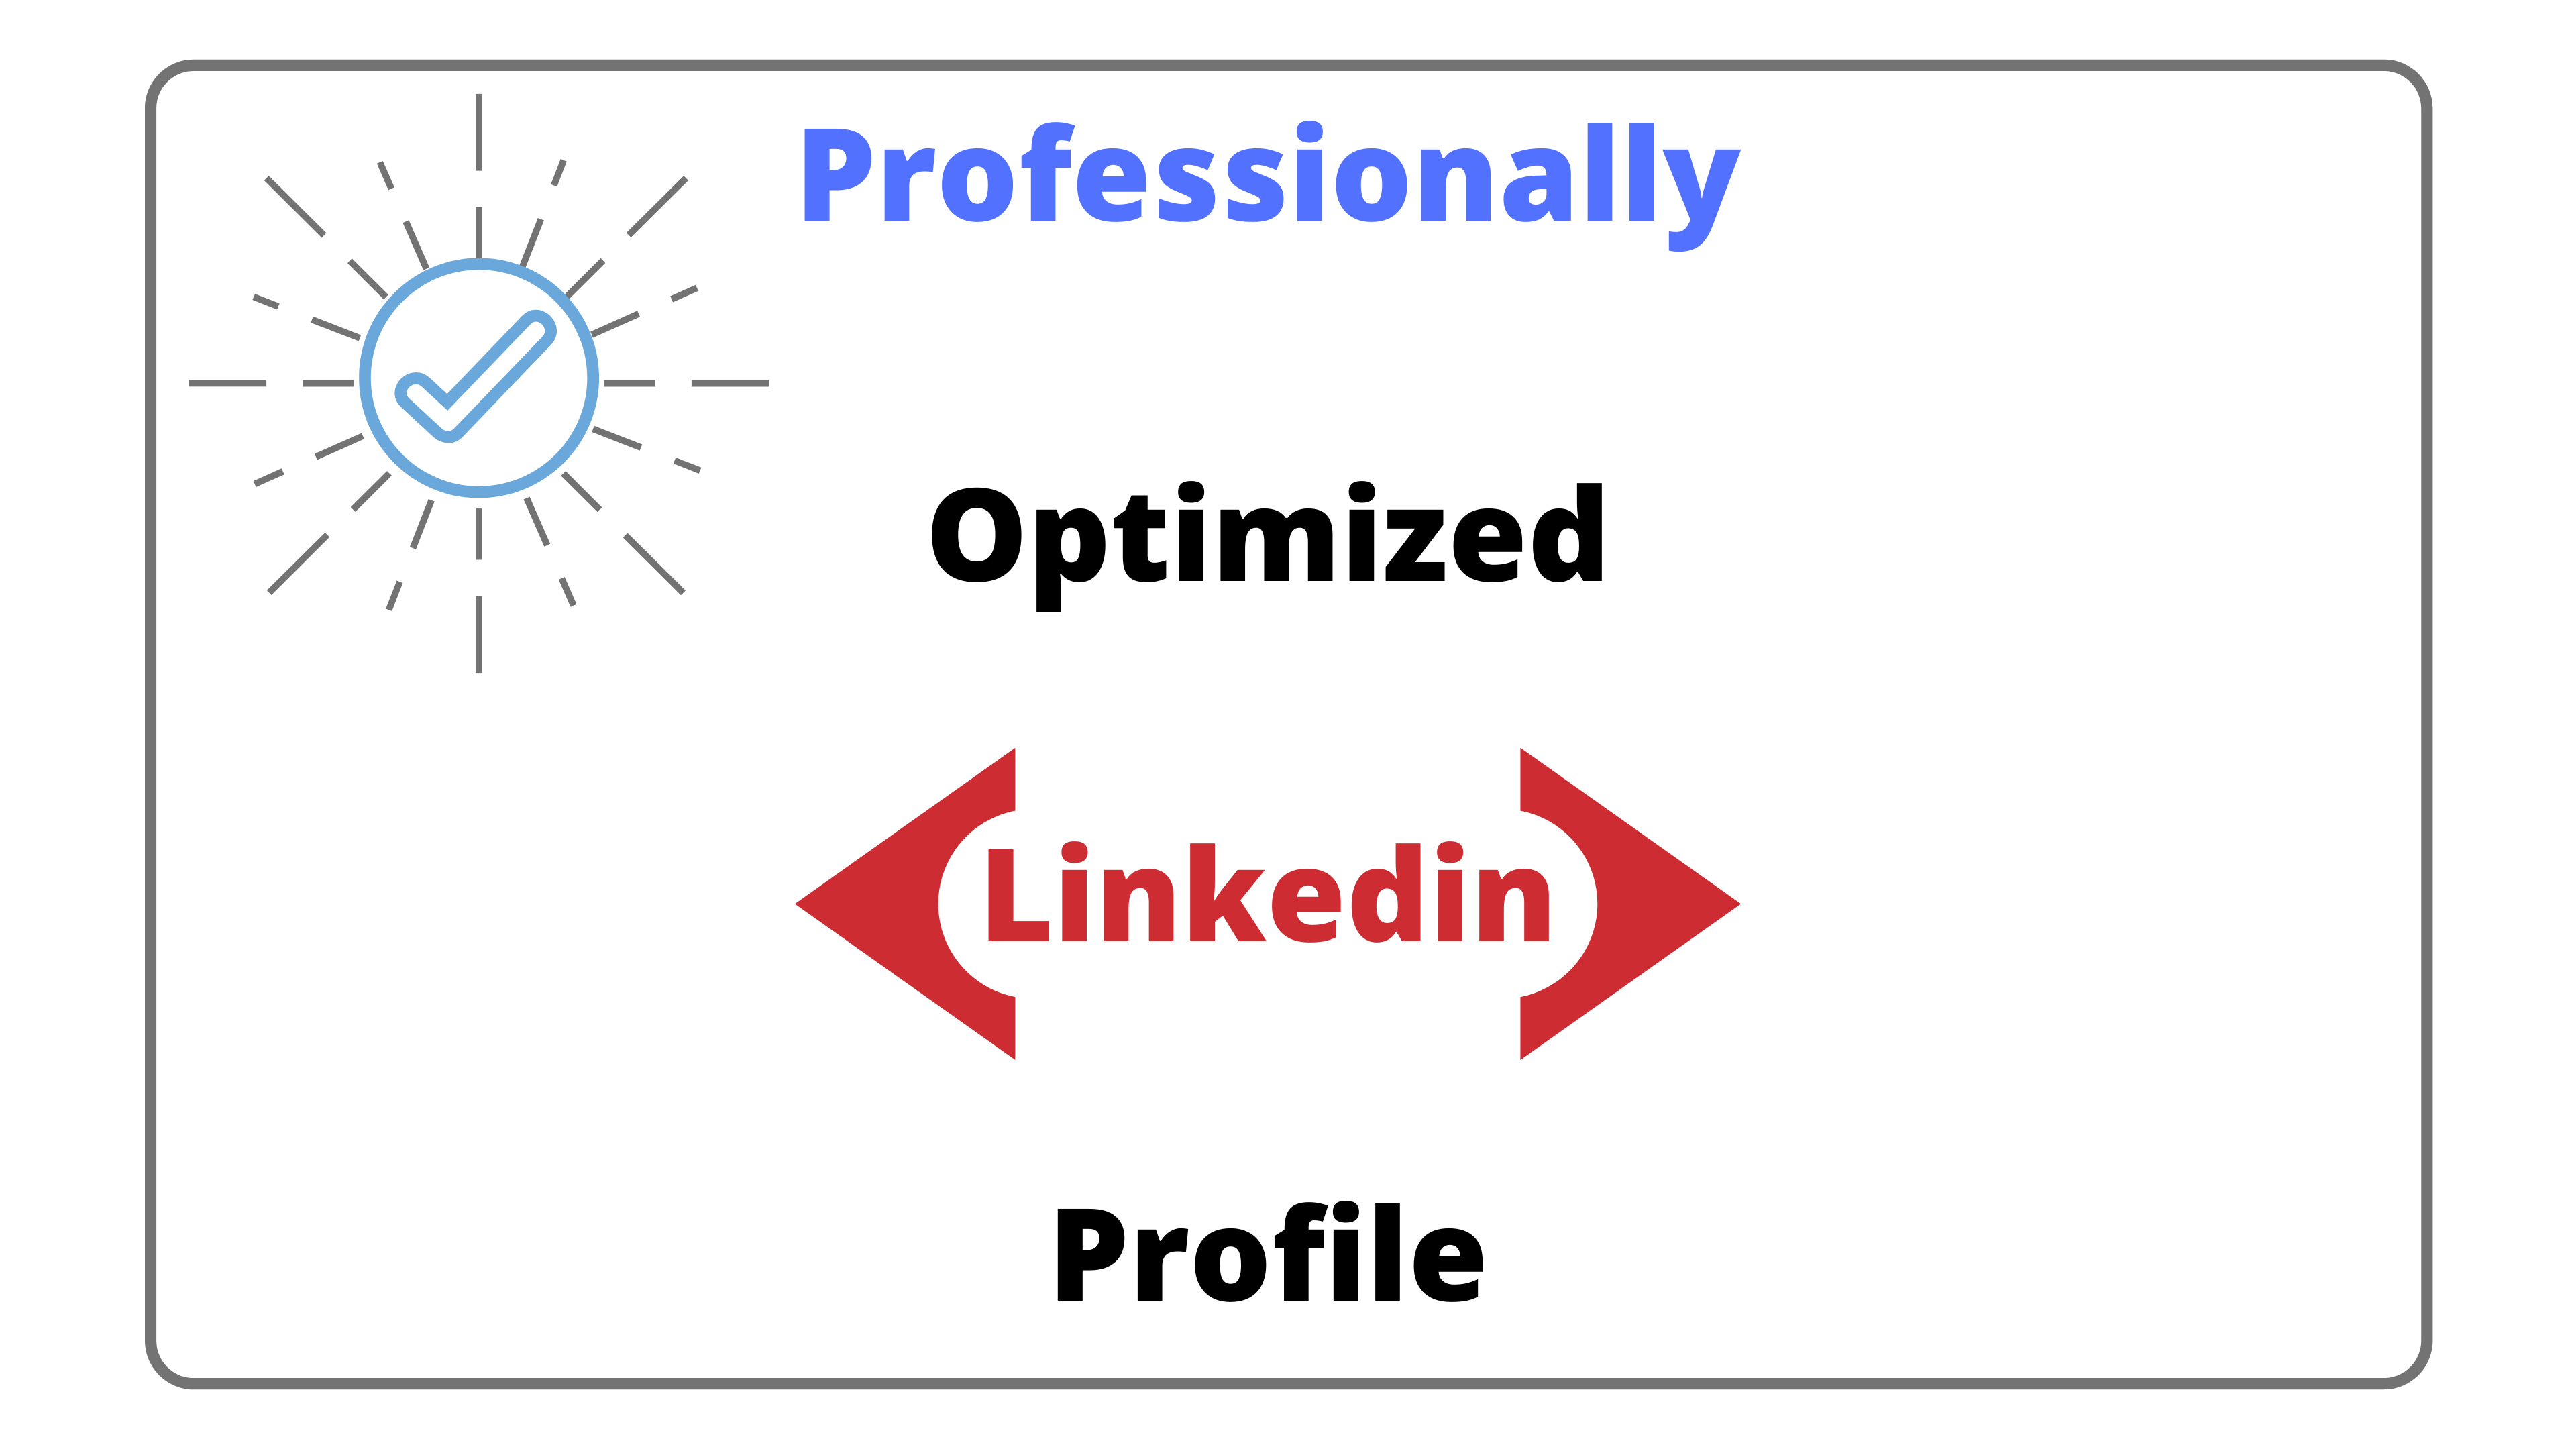 Professionally Optimized Linkedin Profile Grow Your Business Profile